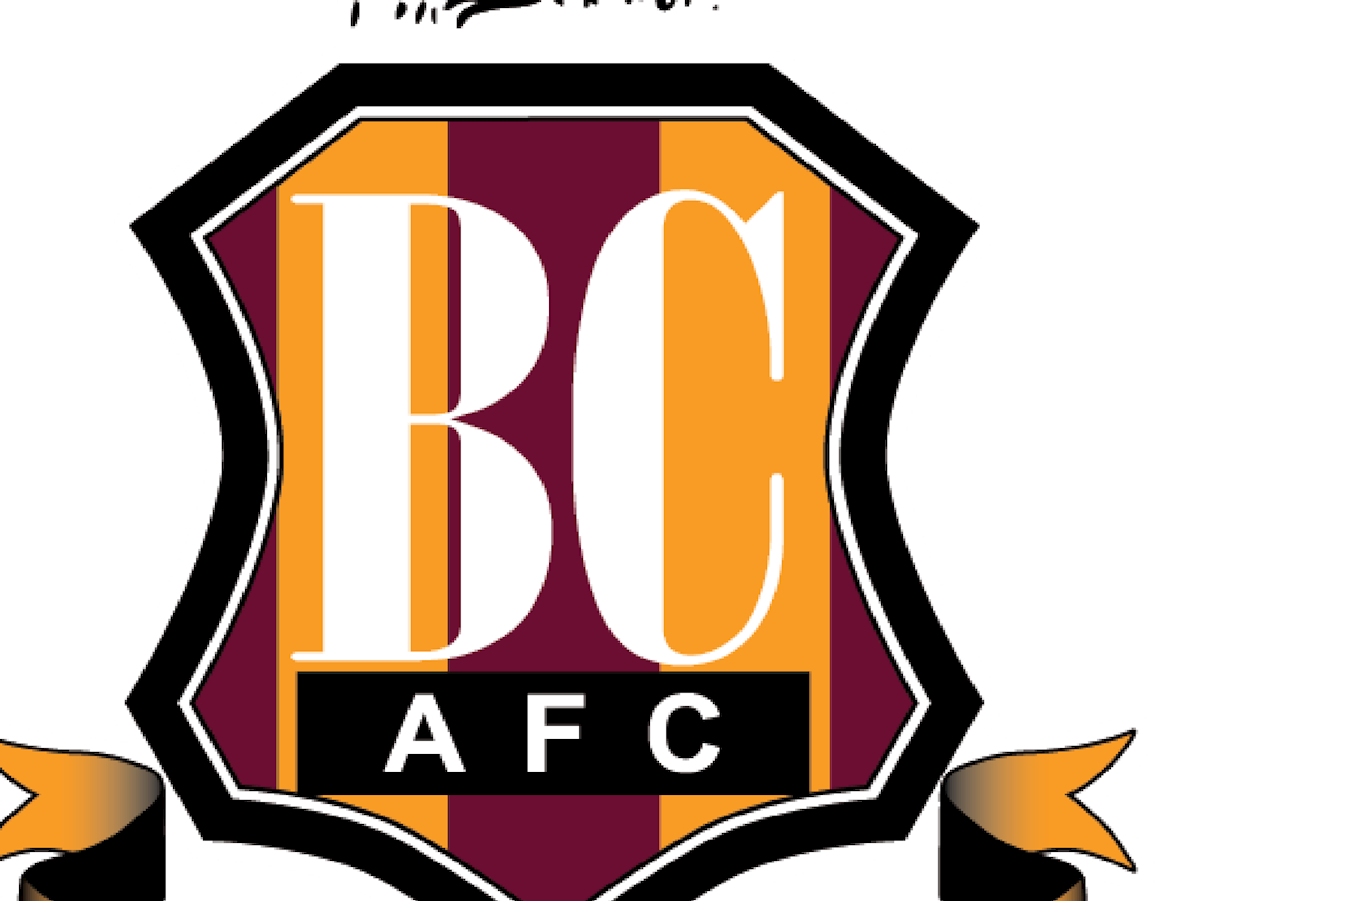 AN UPDATE FROM THE CLUB - News - Bradford City